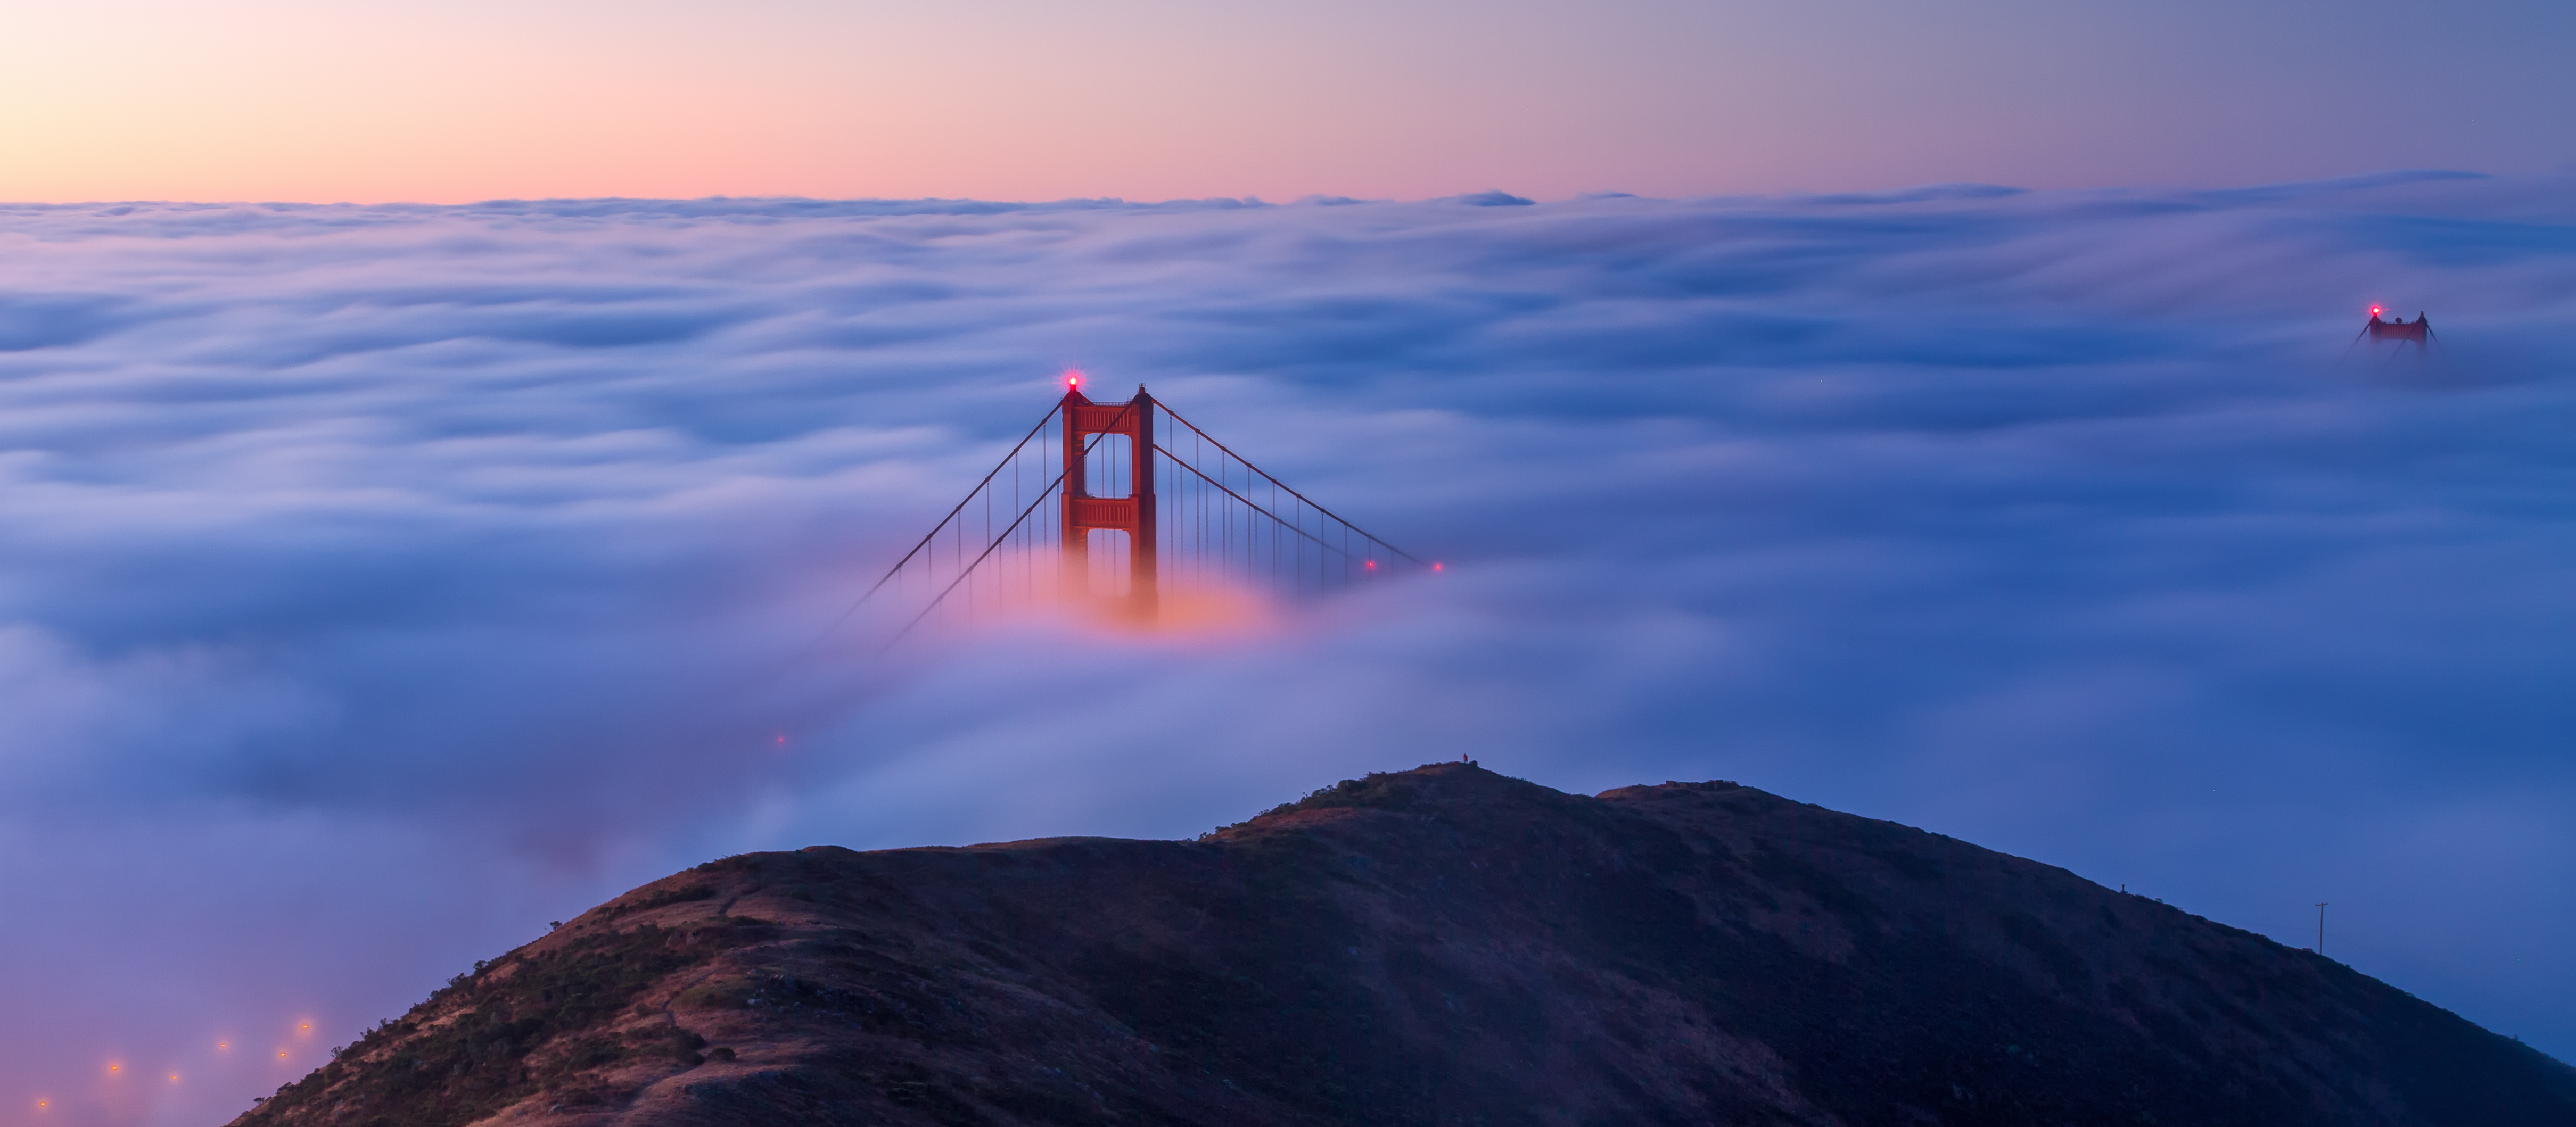 A view of the Golden Gate Bridge from the Marin Headlands on a foggy morning at sunrise.